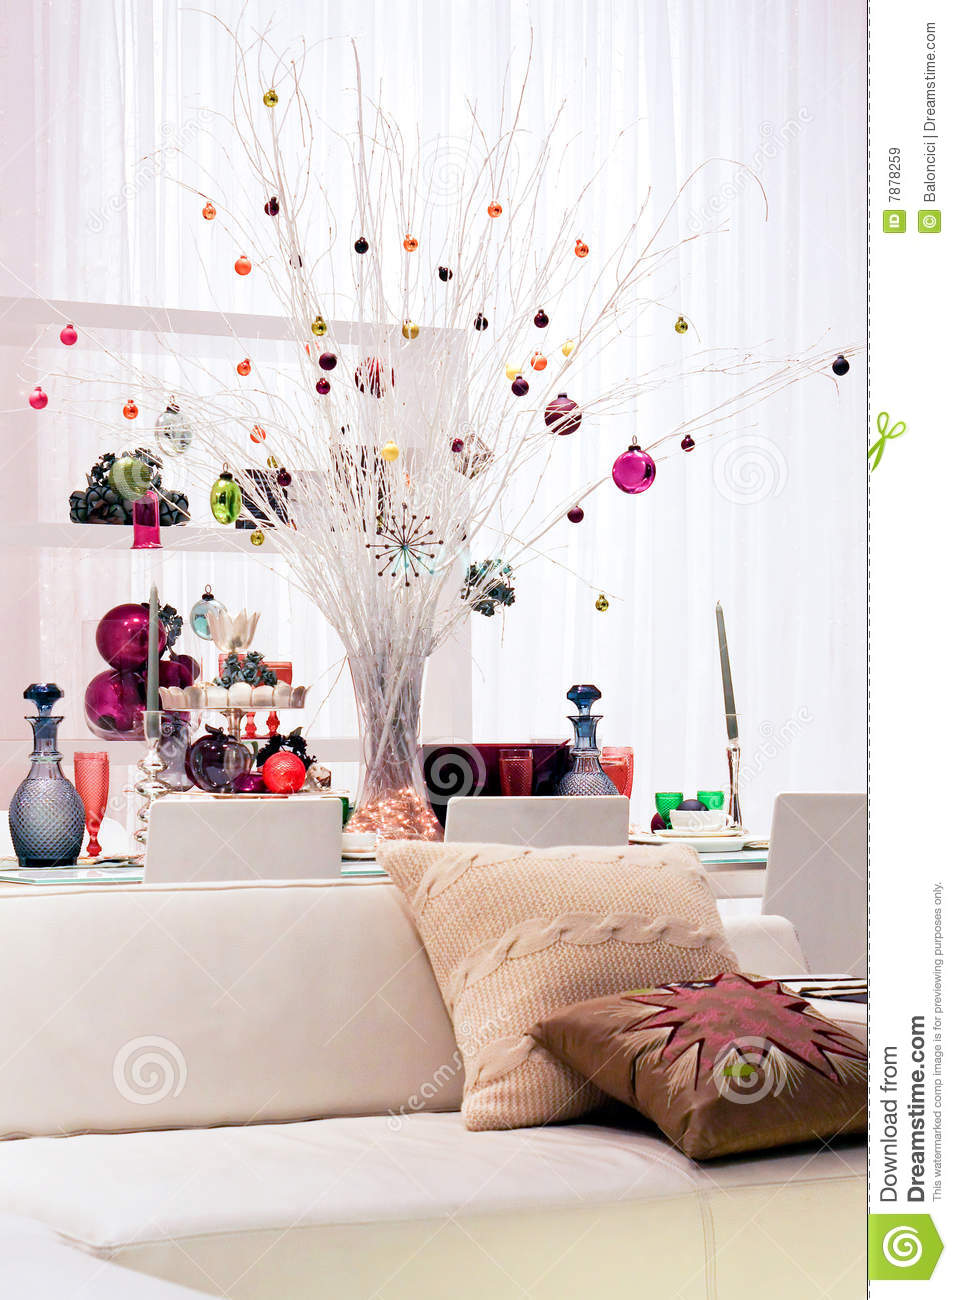 Home Decor Royalty Free Stock Images Image 7878259